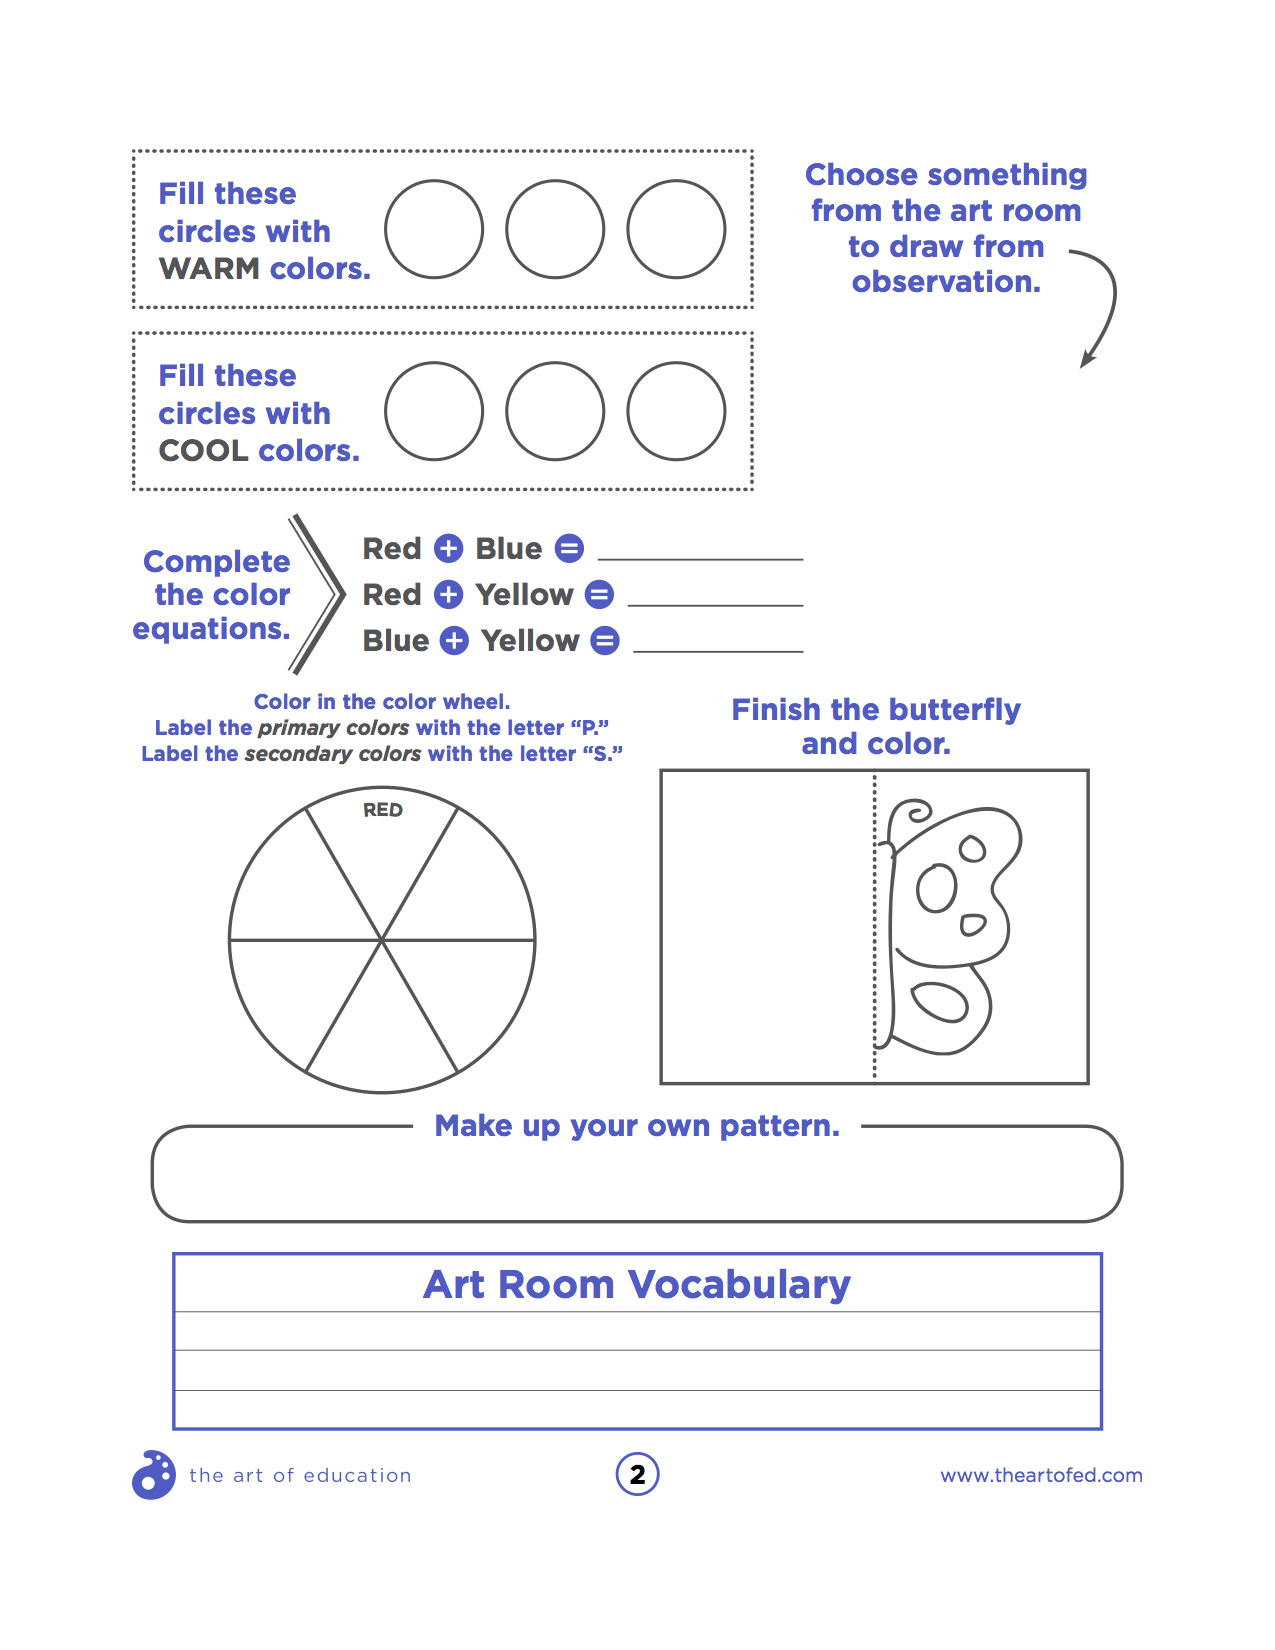 The Perfect Portfolio Cover Sheets for Your K-8 Students - The Art of  Education University   Art curriculum planning [ 1650 x 1275 Pixel ]